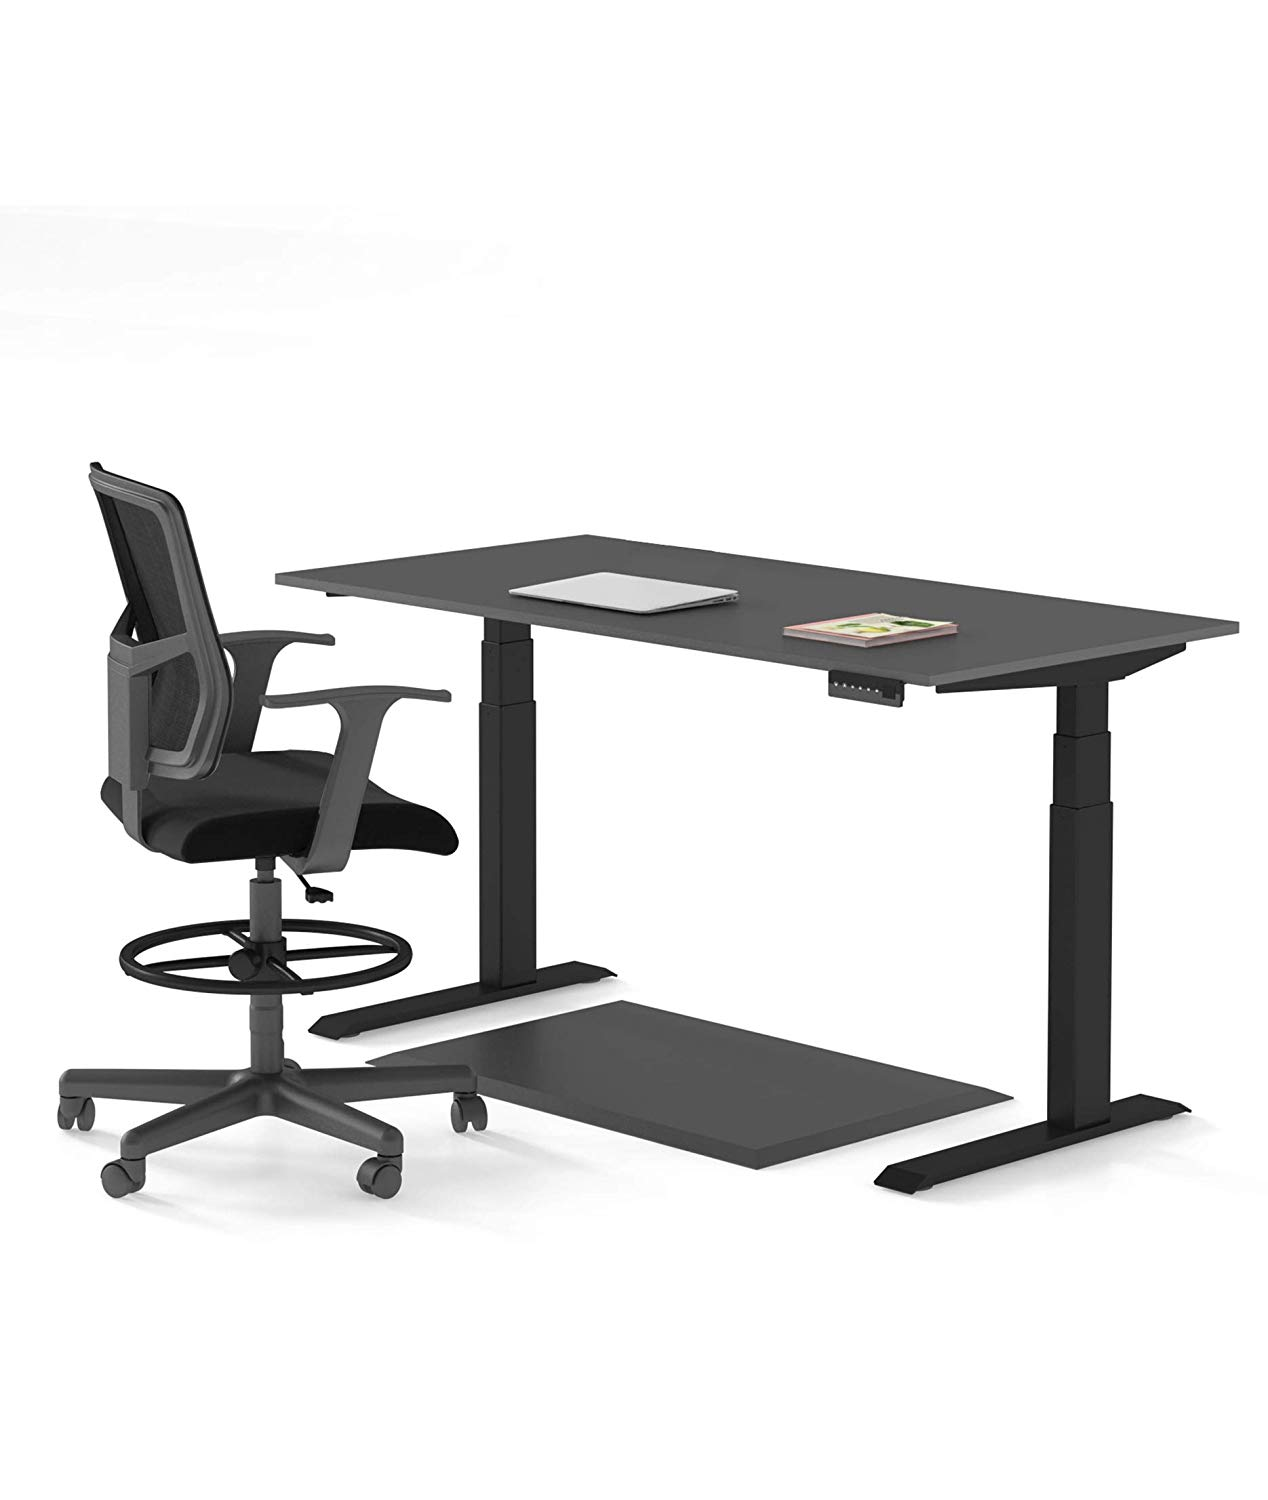 "Electric Stand Up Desk Starter Bundle – Includes a Standing Desk/Height Adjustable Desk, Standing Desk Mat/Anti Fatigue Mat, and Drafting Chair/Drafting Stool (60"") (Black)"